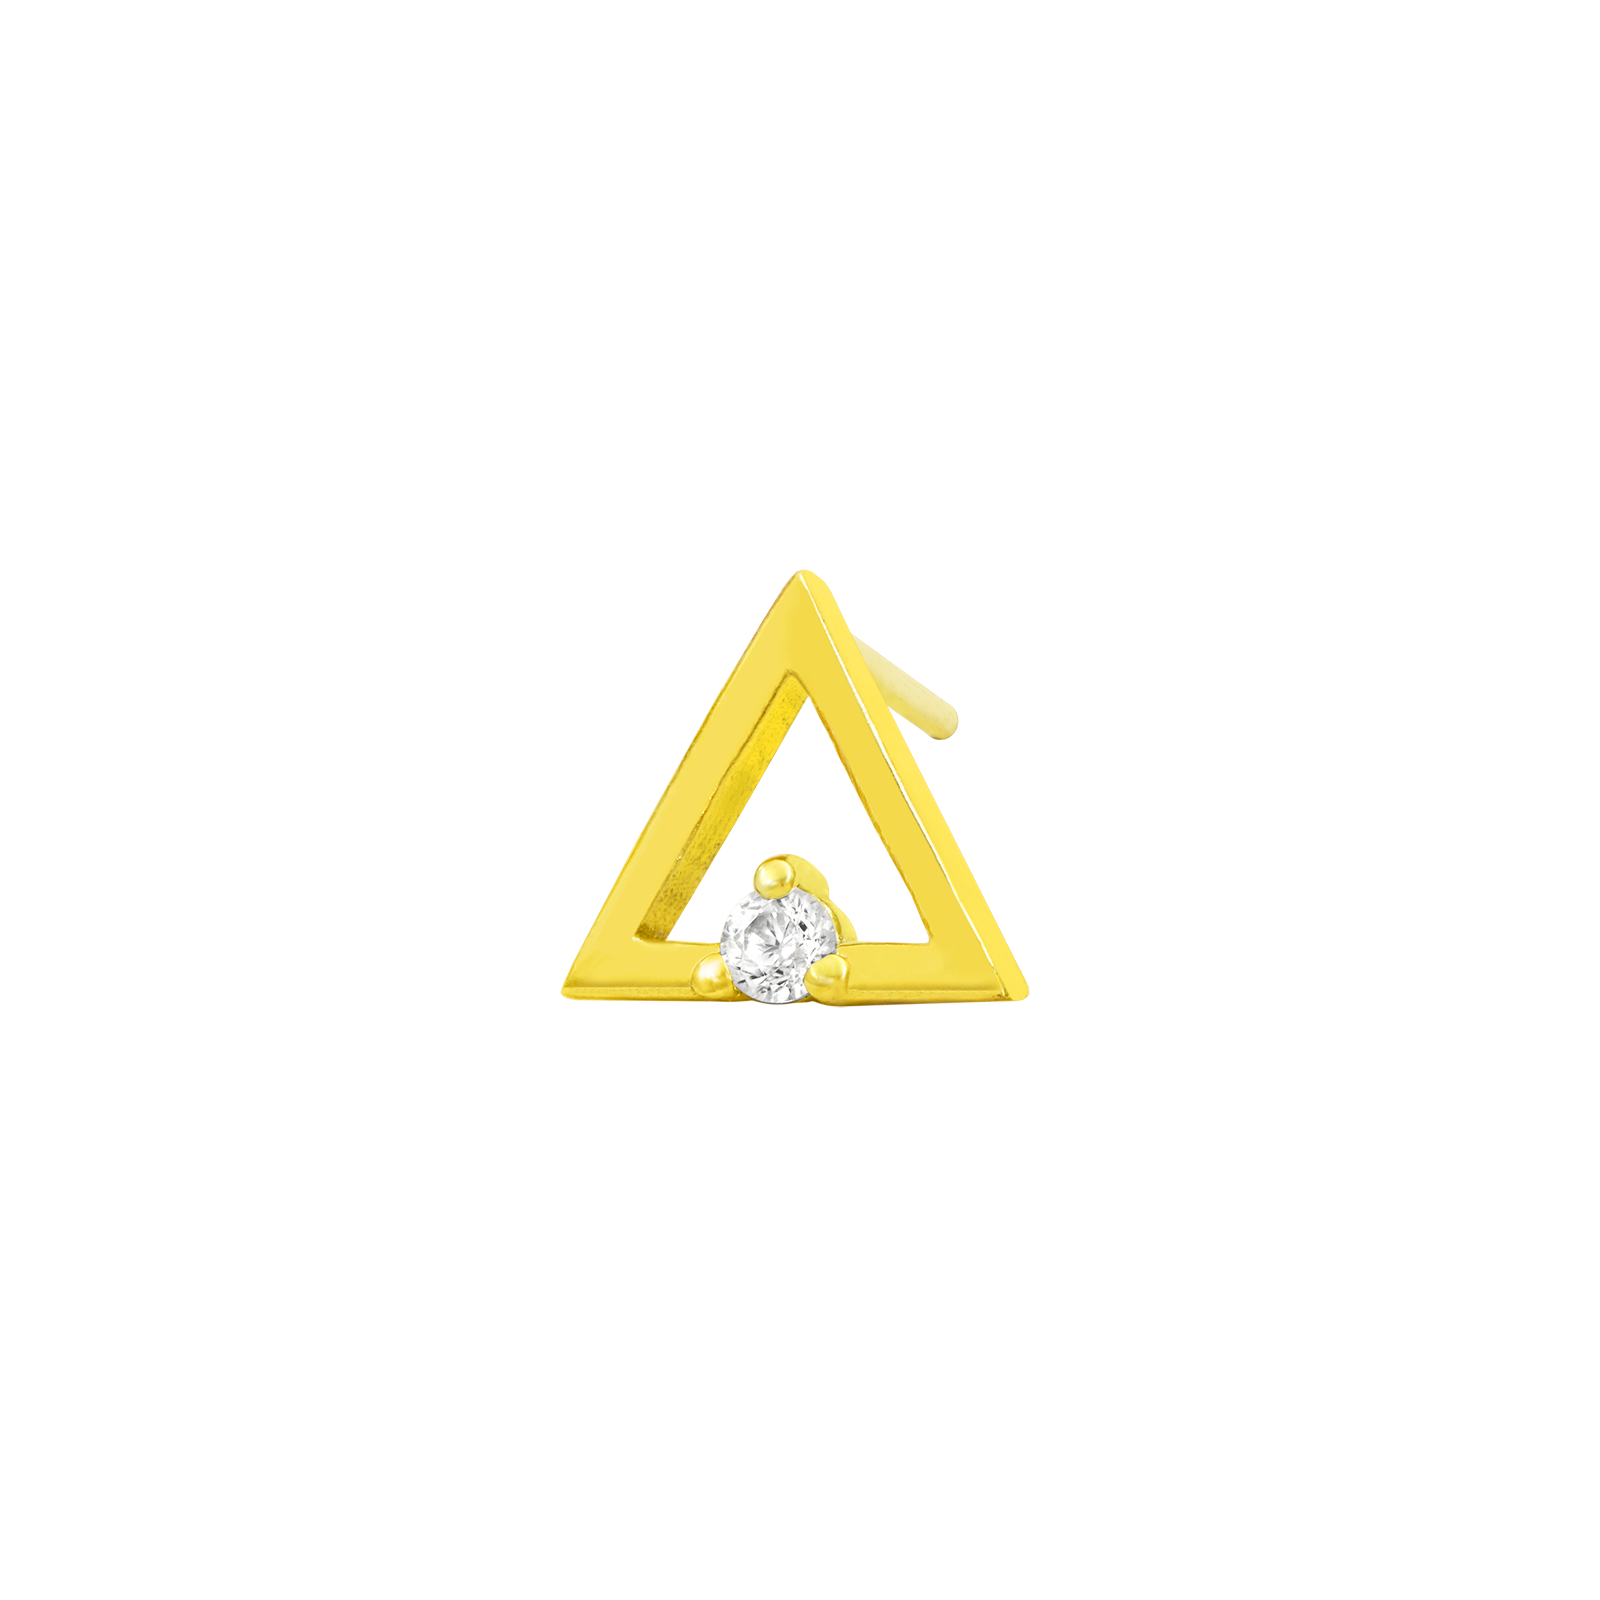 14ct Gold Triangle with Swarovski CZ stone - Isha Body Jewellery